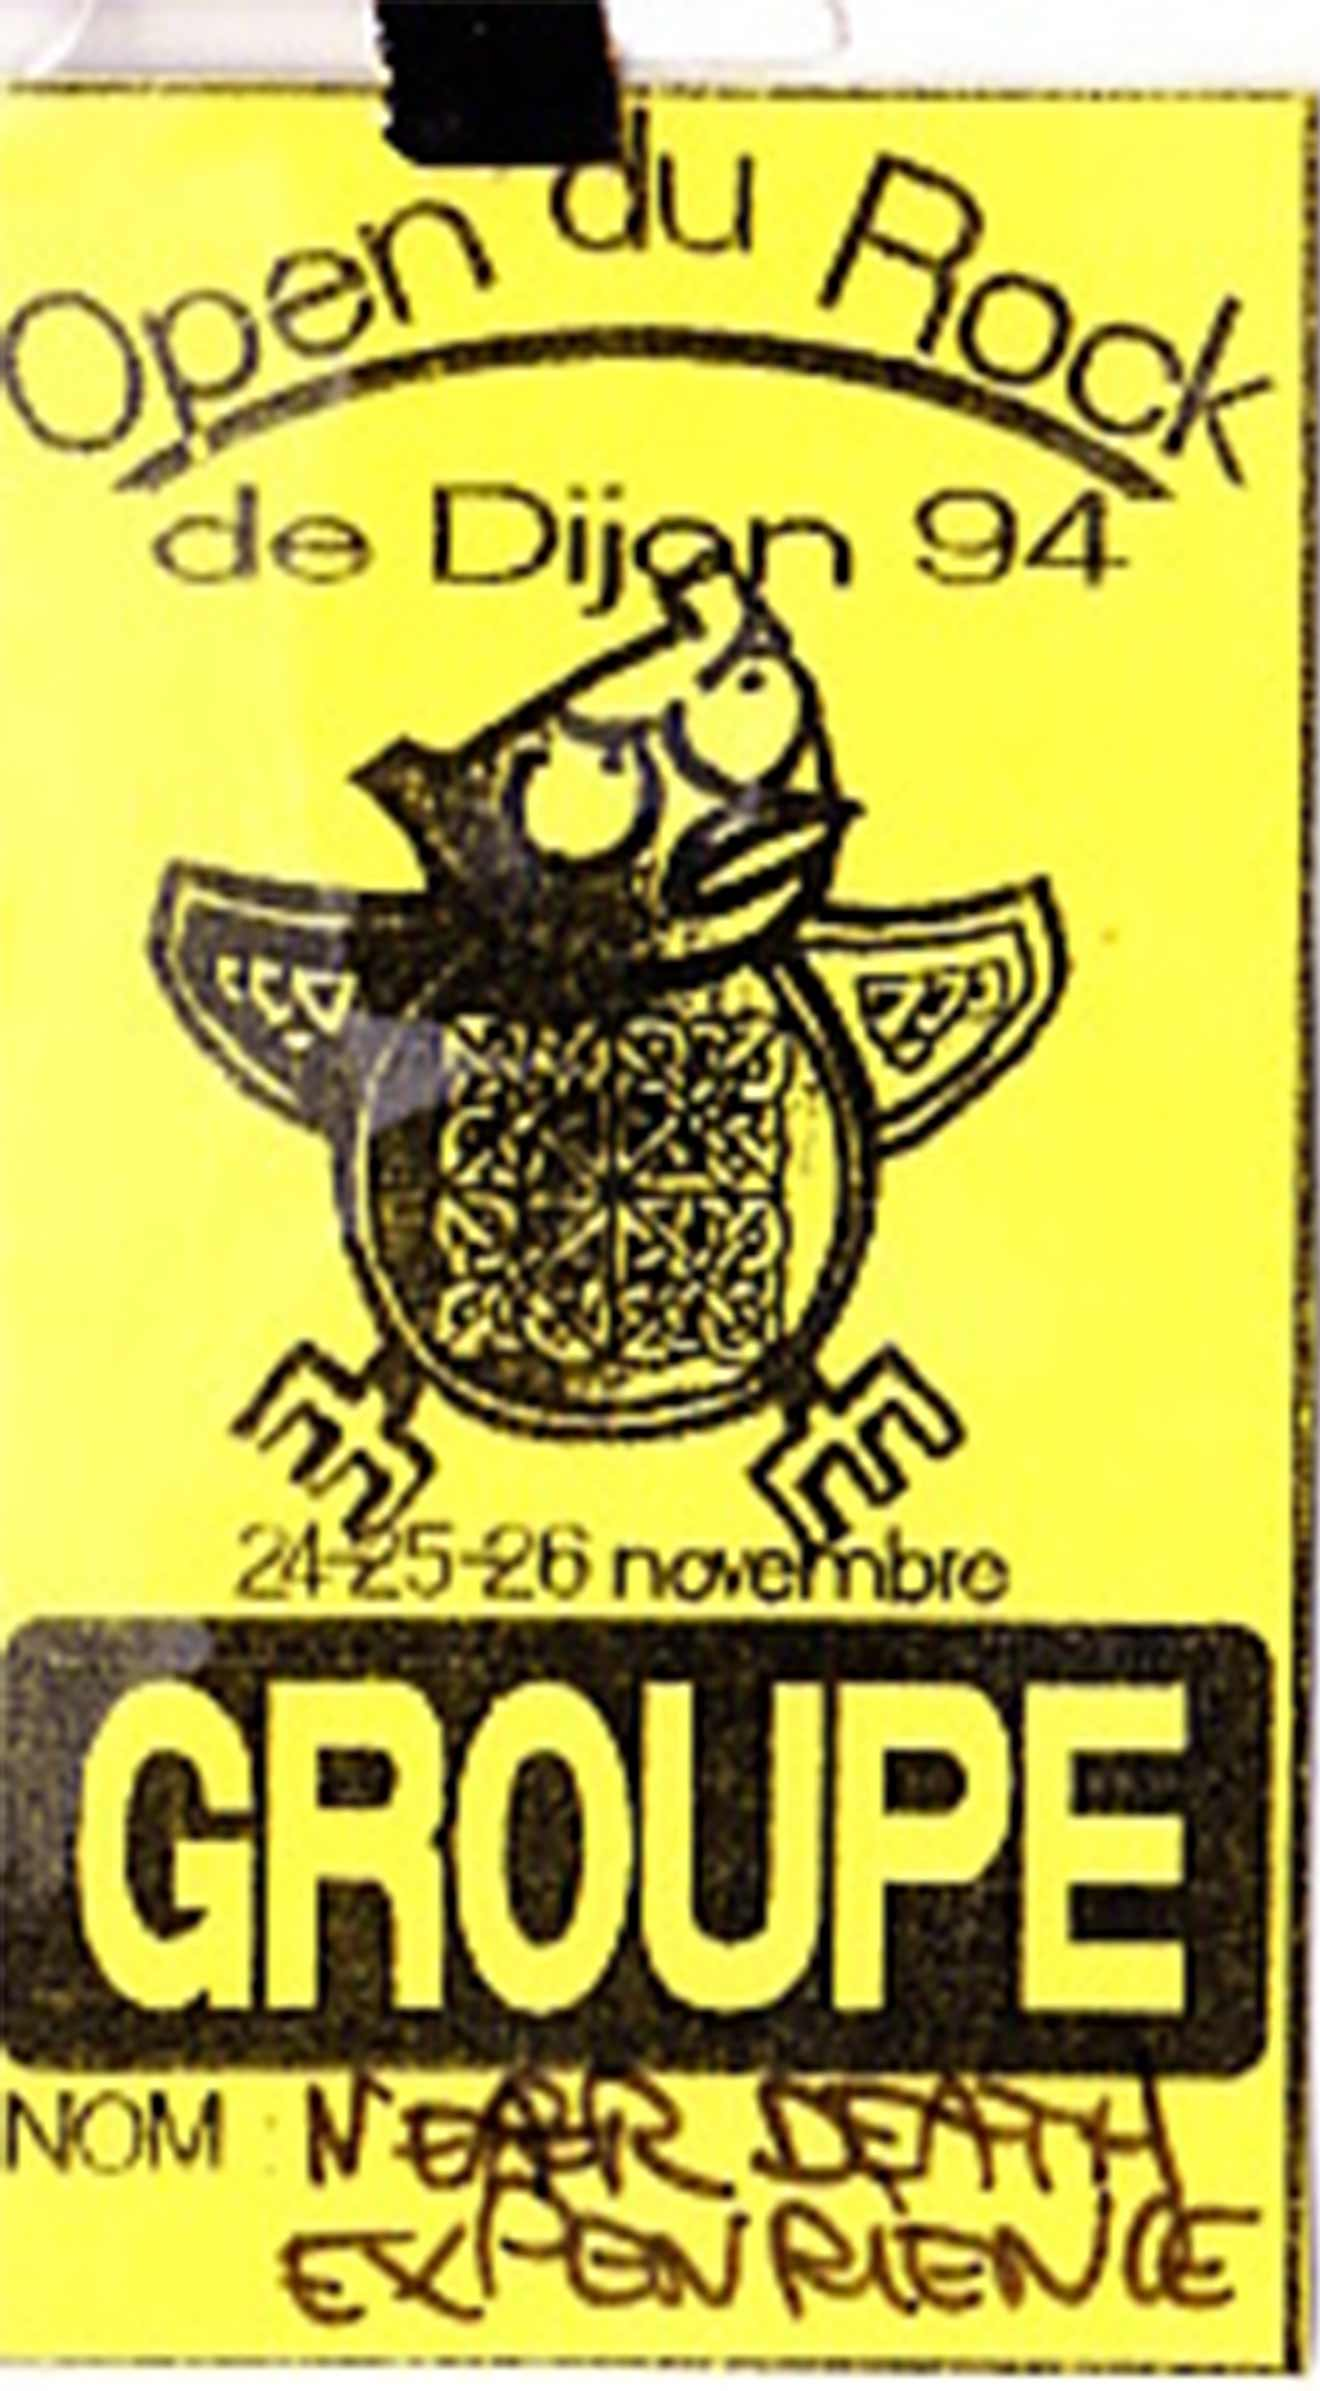 novembre 1994 IAM, Near Death Experience à Dijon / Open du Rock (par expo) (+ IAM) (pass inclus)